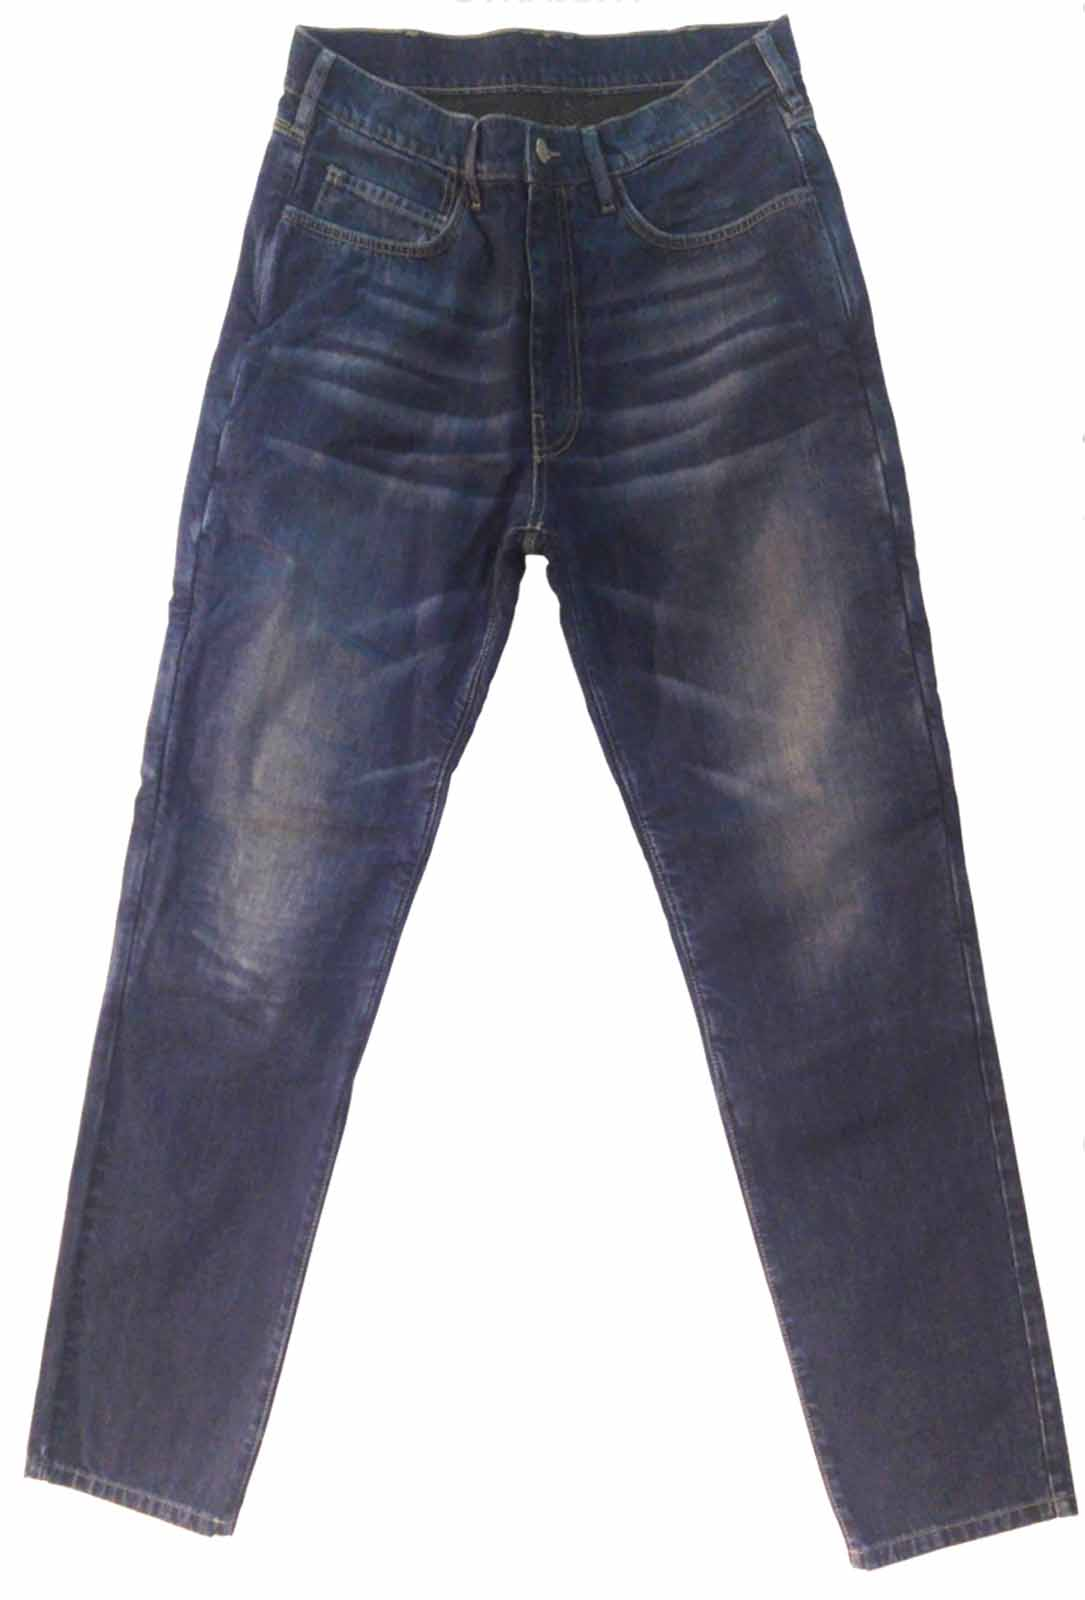 Bull - it SR6 Vintage Jeans Vintage Recht Model